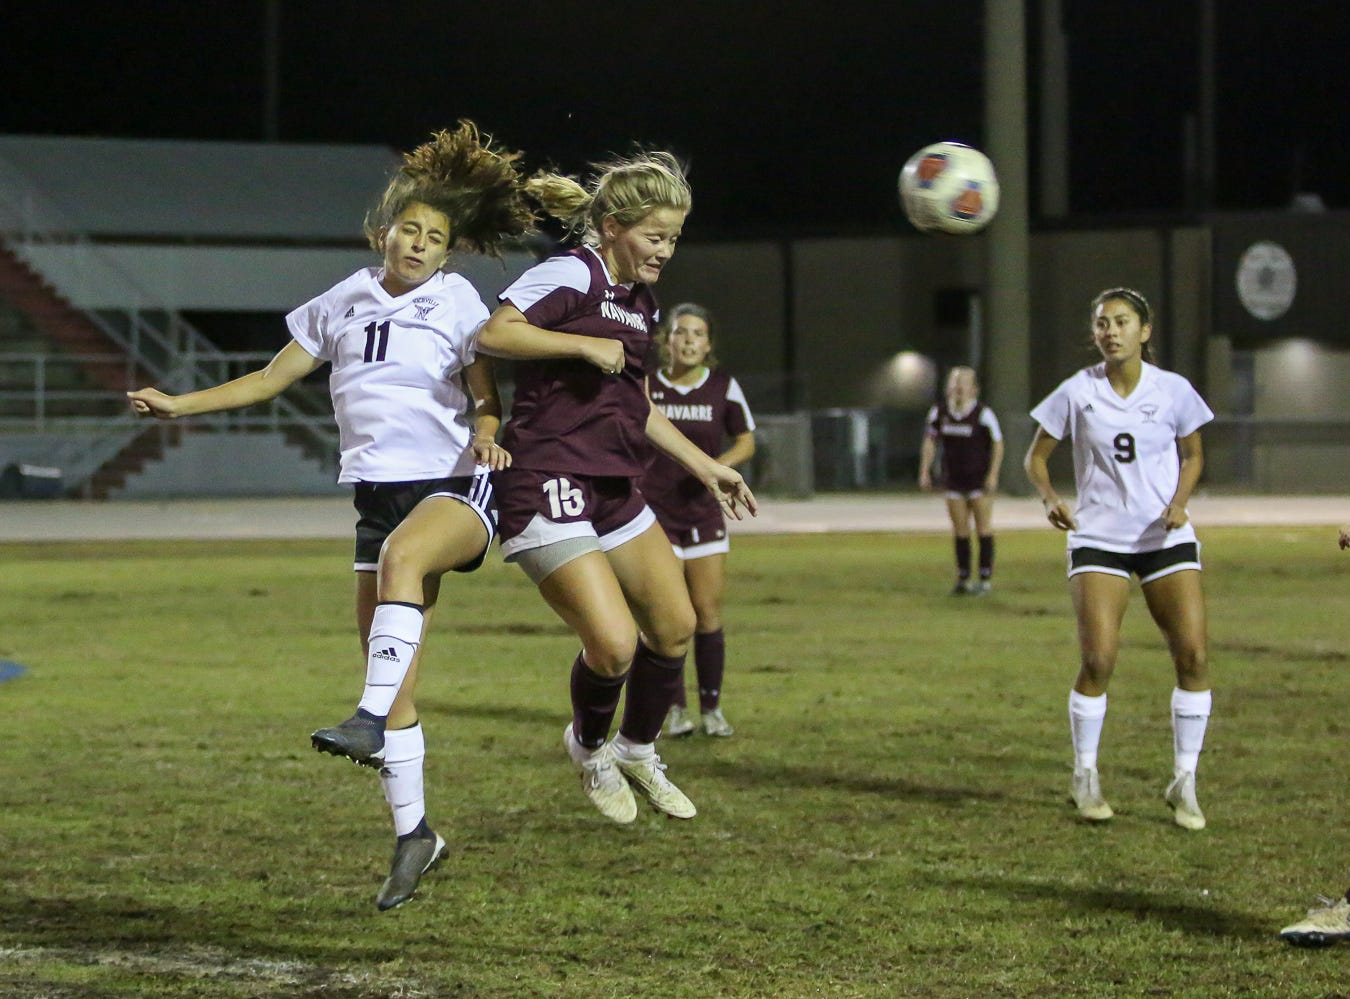 Niceville's Kayla Fernandez (11) and Navarre's Autumn Slaybaugh (15) go up for a header to get control of the ball in a District 1-4A showdown of unbeaten teams at Navarre High School on Tuesday, December 4, 2018. The game ended in a 1-1 tie.